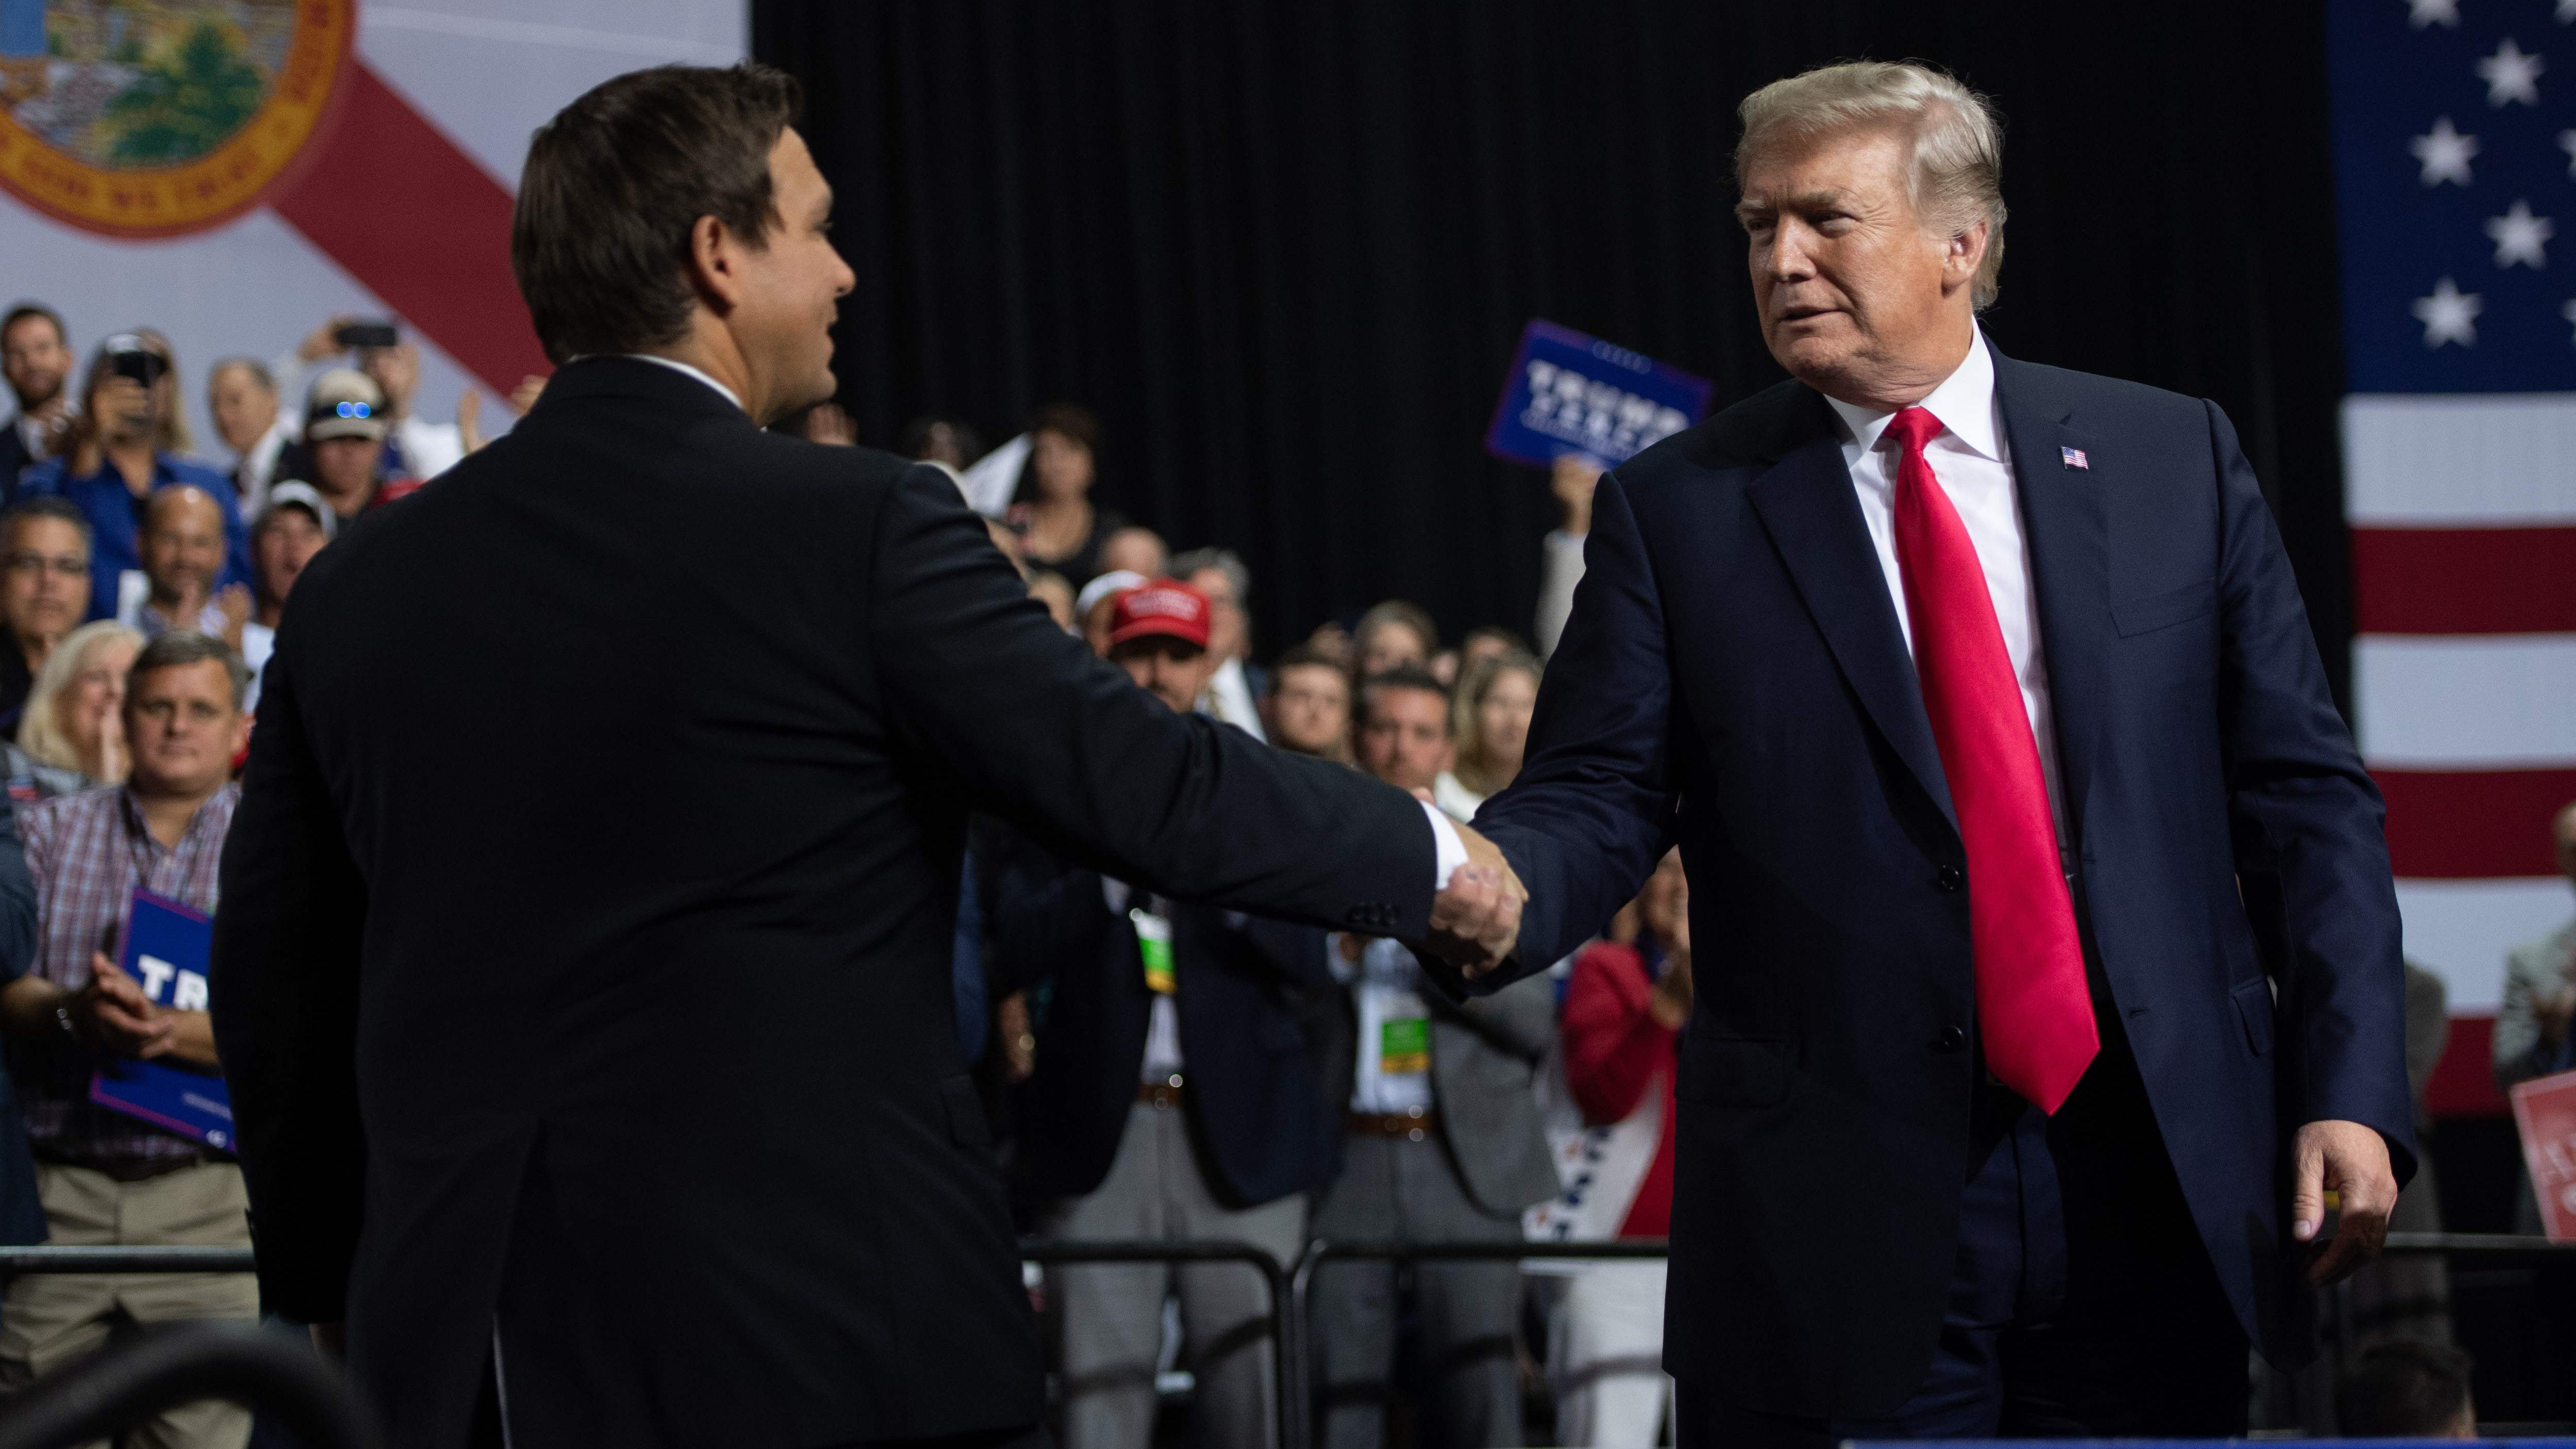 President Donald Trump shakes hands with US Representative Ron DeSantis, Republican of Florida, and candidate for Florida Governor, as he speaks during a campaign rally at Florida State Fairgrounds Expo Hall in Tampa, Fla. on July 31, 2018.